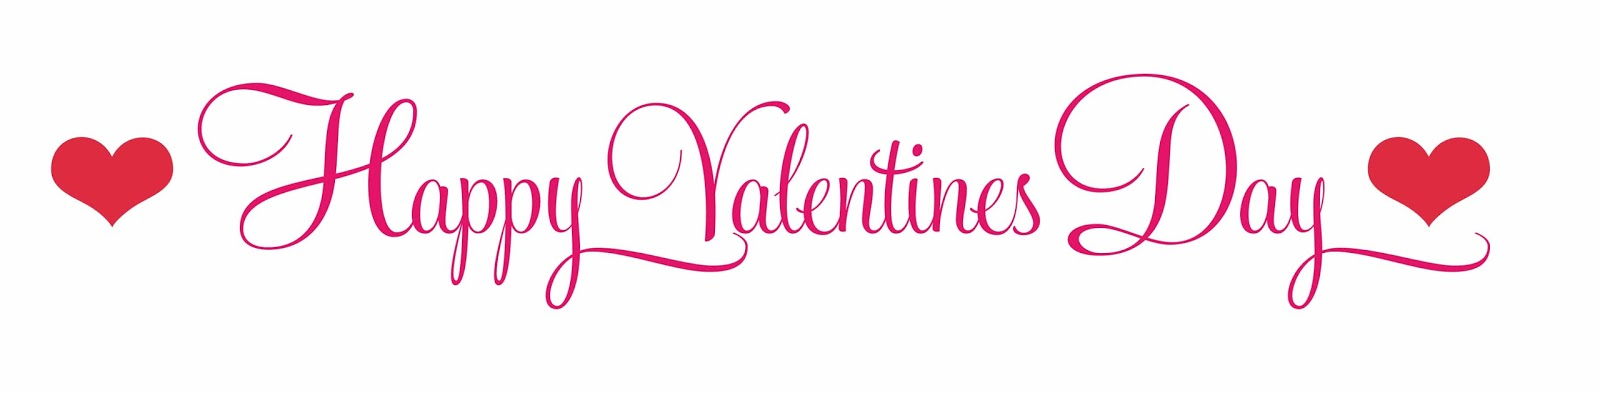 Valentines day 2018 hotel packages and deals in Manchester UK